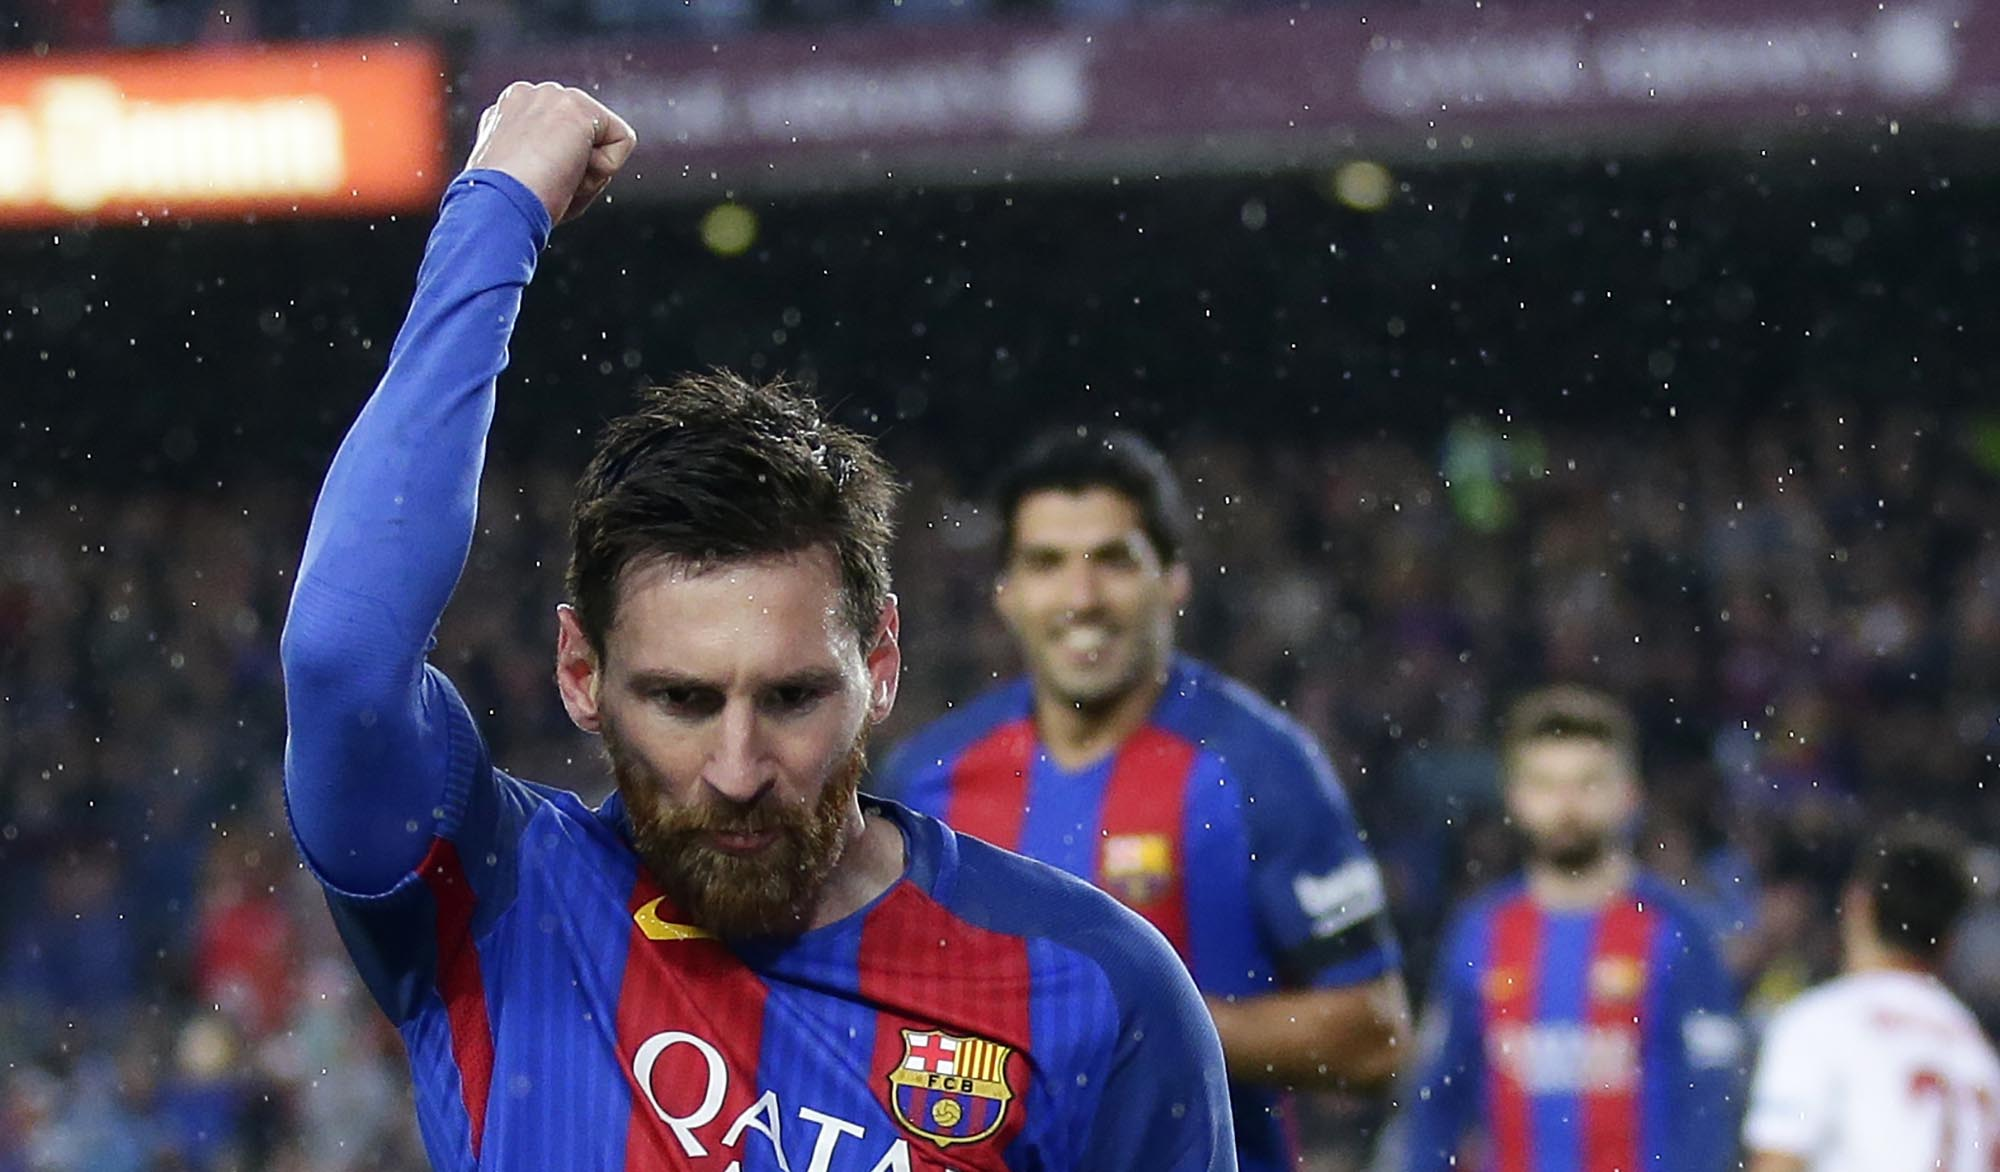 FC Barcelona's Lionel Messi celebrates after scoring during the Spanish La Liga soccer match between FC Barcelona and Sevilla at the Camp Nou stadium in Barcelona, Spain, on Wednesday, April 5, 2017. Photo: AP